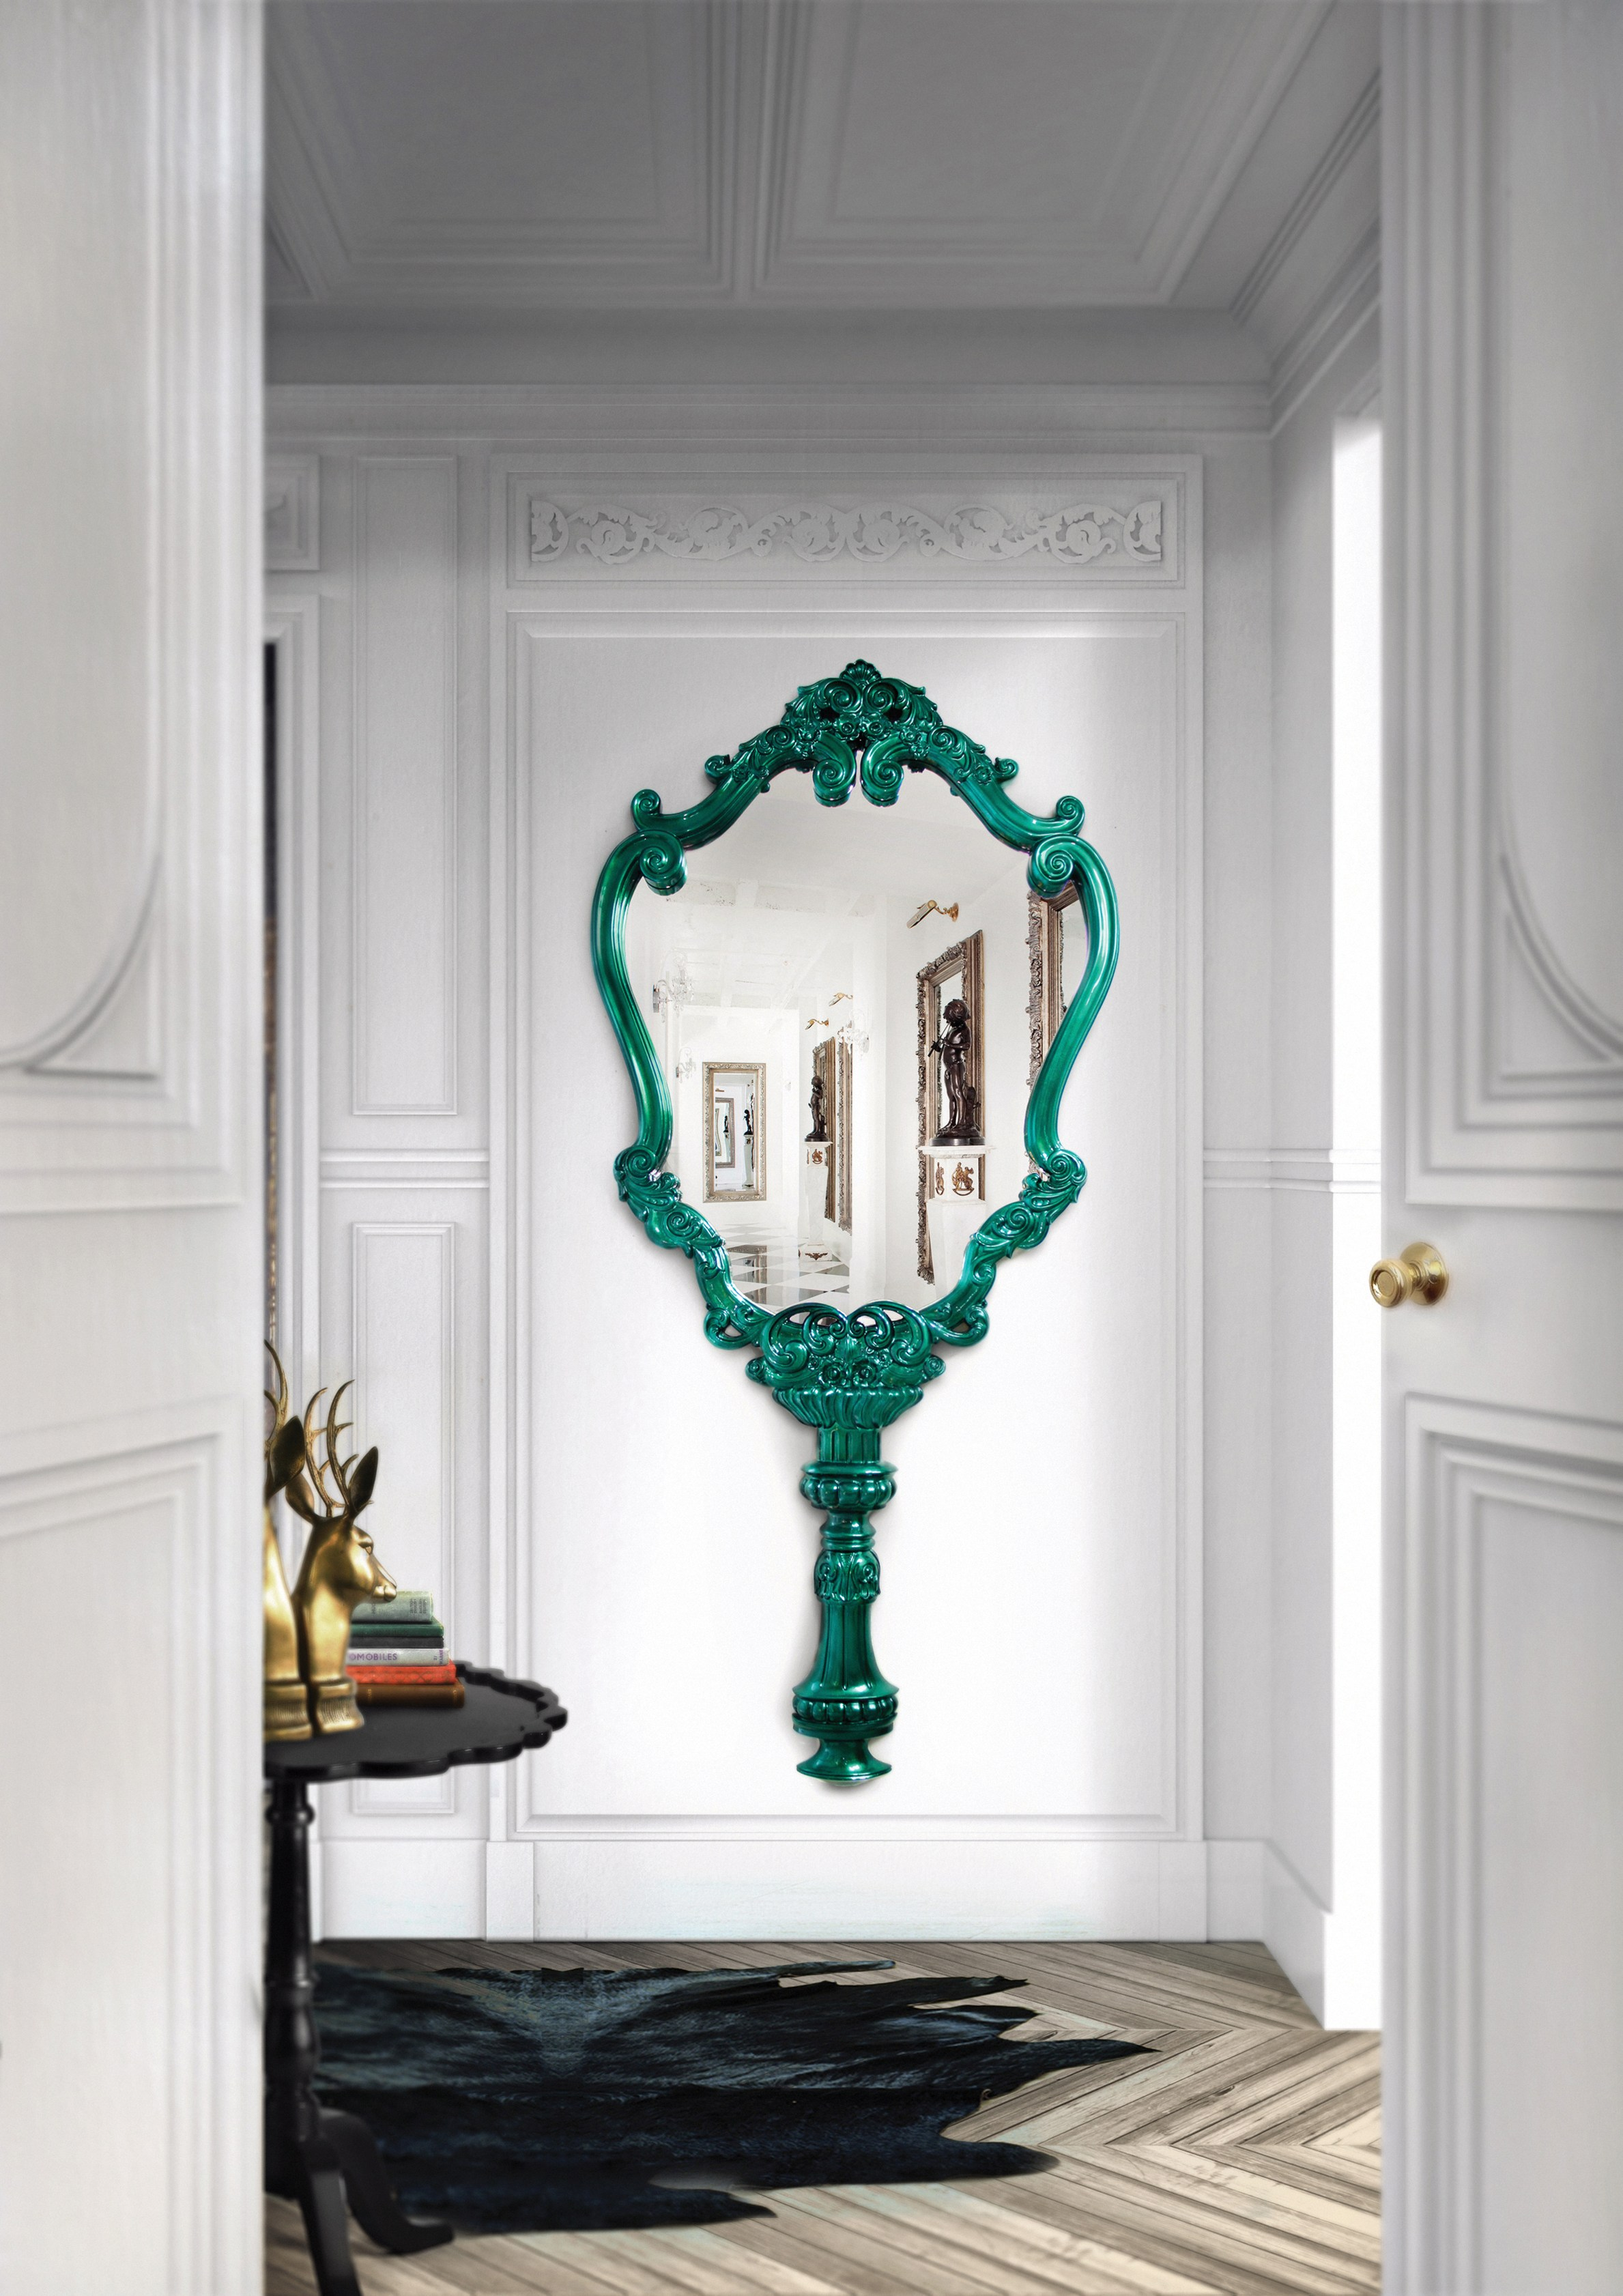 How to Decorate with Green Accents green accents How to Decorate with Green Accents How to Decorate with Green Accents1